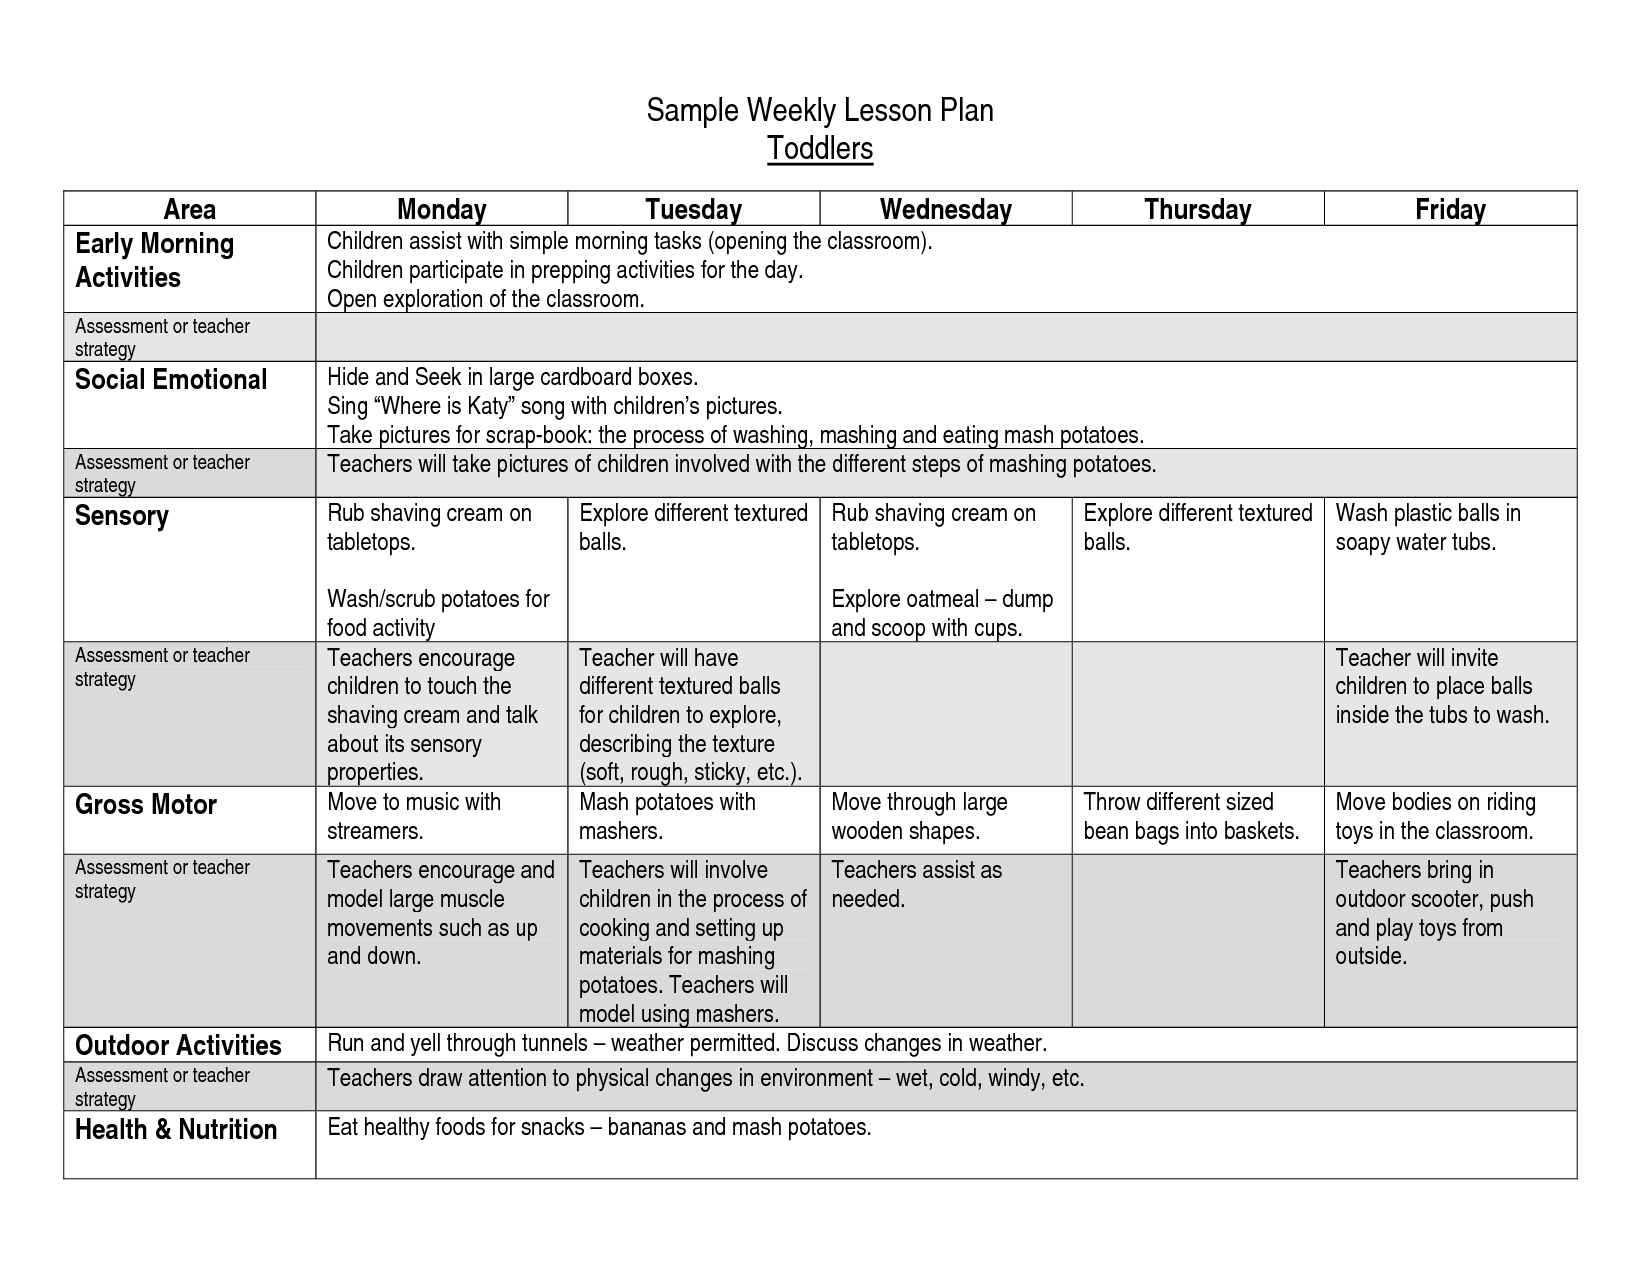 Download Free Weekly Lesson Plan Template Lots Of Free Common Core Teacher Resources From